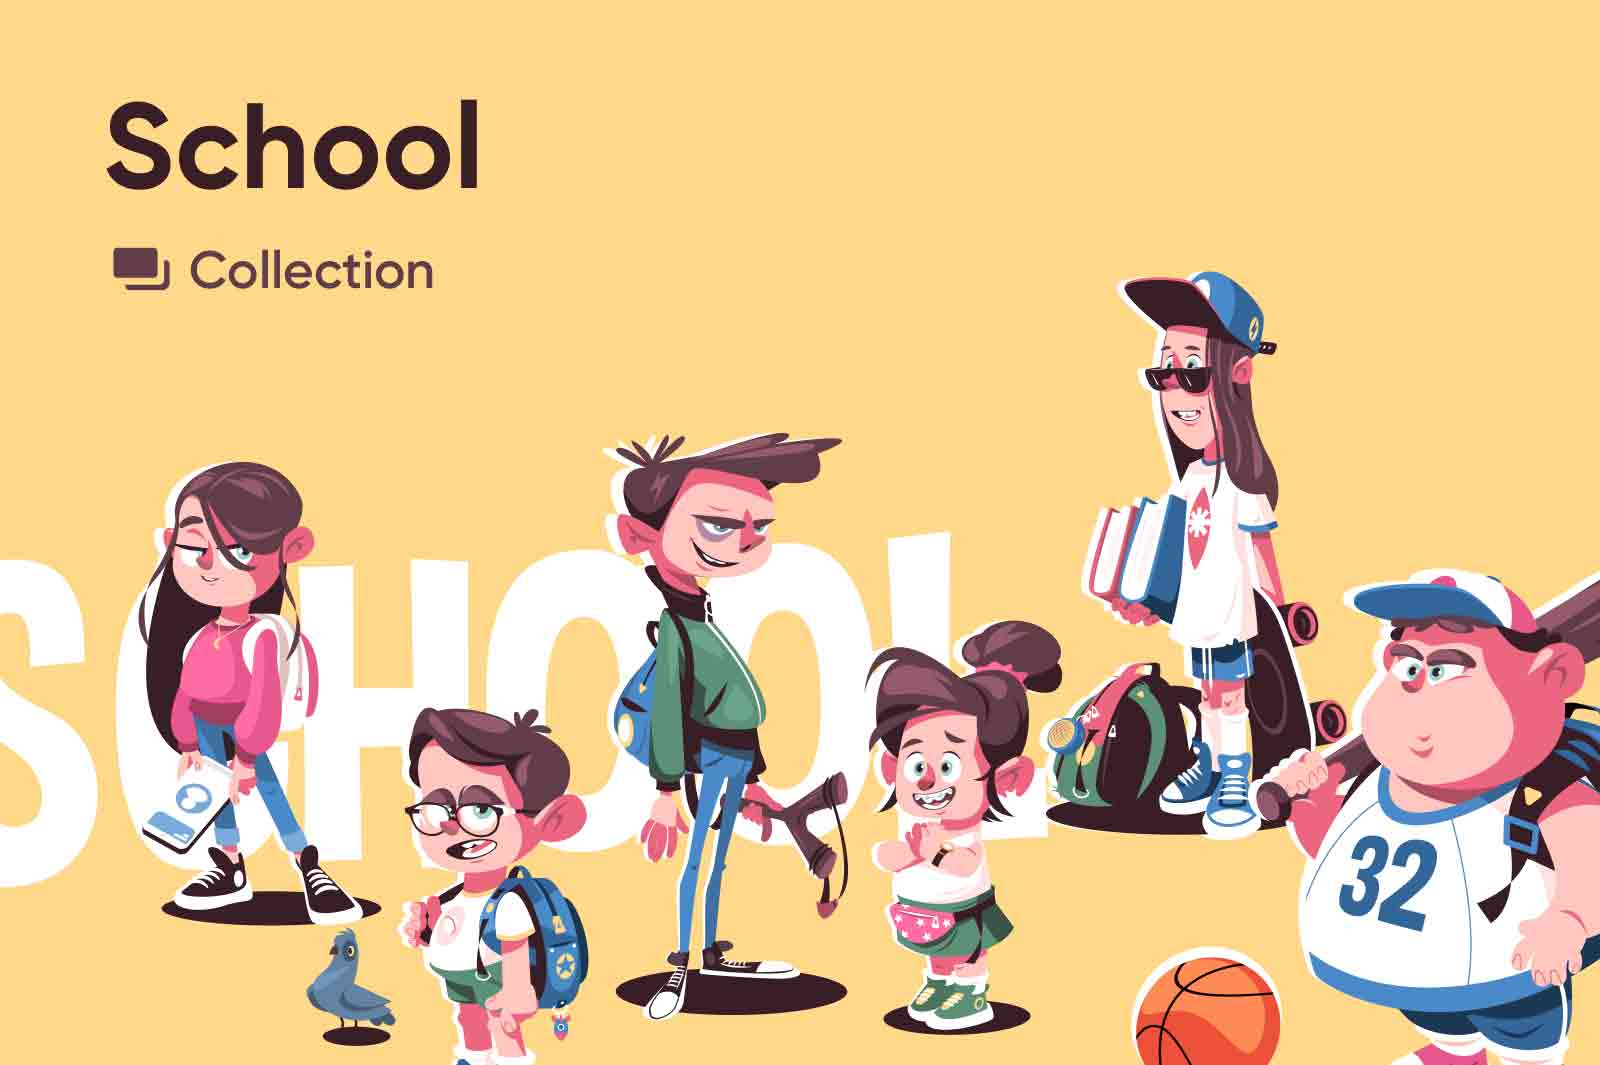 Character vector illustrations of kids from nearest school. Exclusively on kit8.net